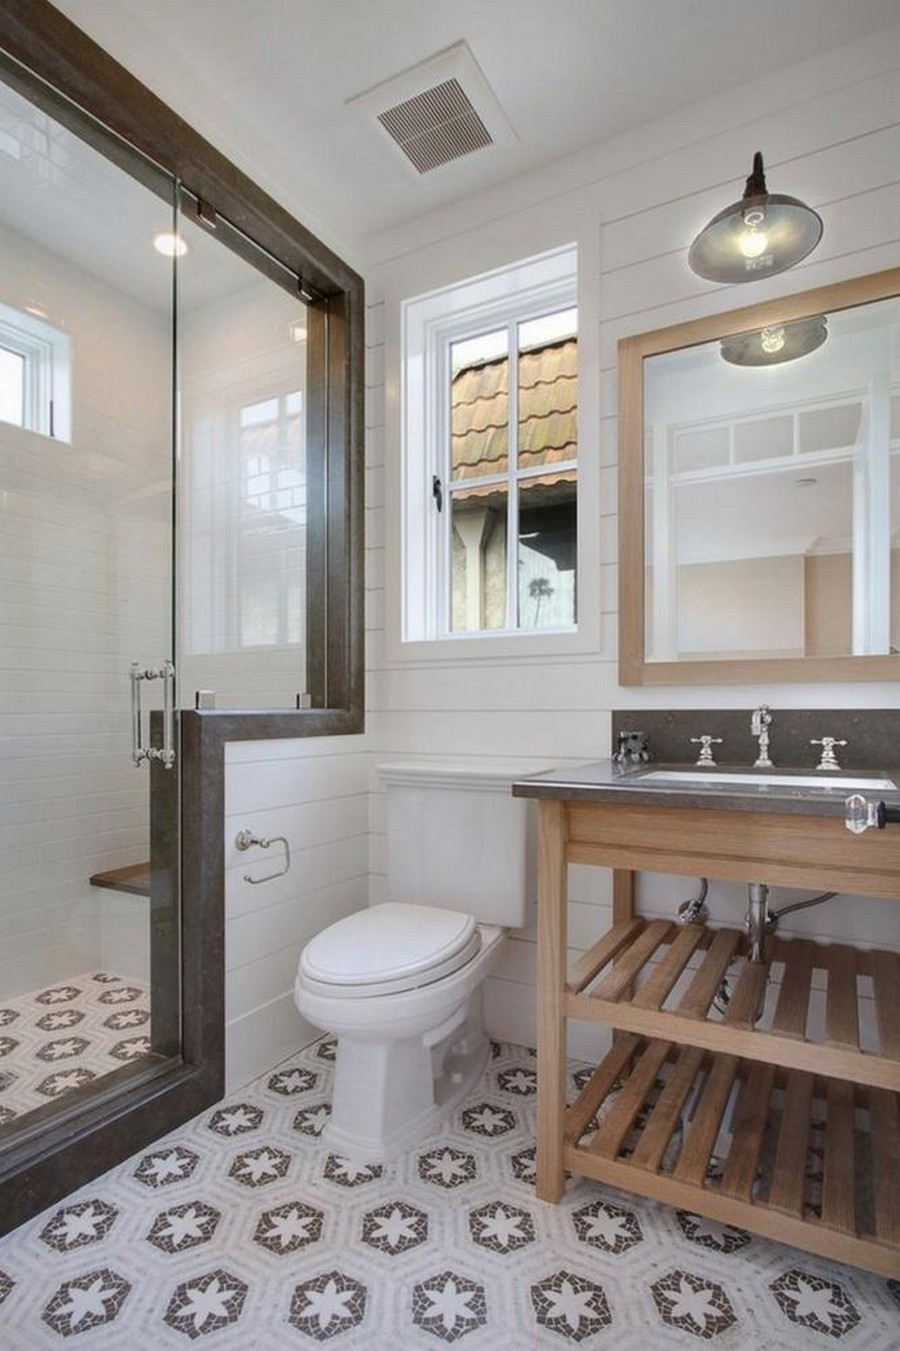 1-clean-tidy-neat-traditiobal-style-bathroom-interior-design-light-wooden-vanity-unit-wooden-planks-mirror-frame-white-walls-glass-walk-in-shower-WC-toilet-window-extraction-fan-hexagonal-floor-tiles-light